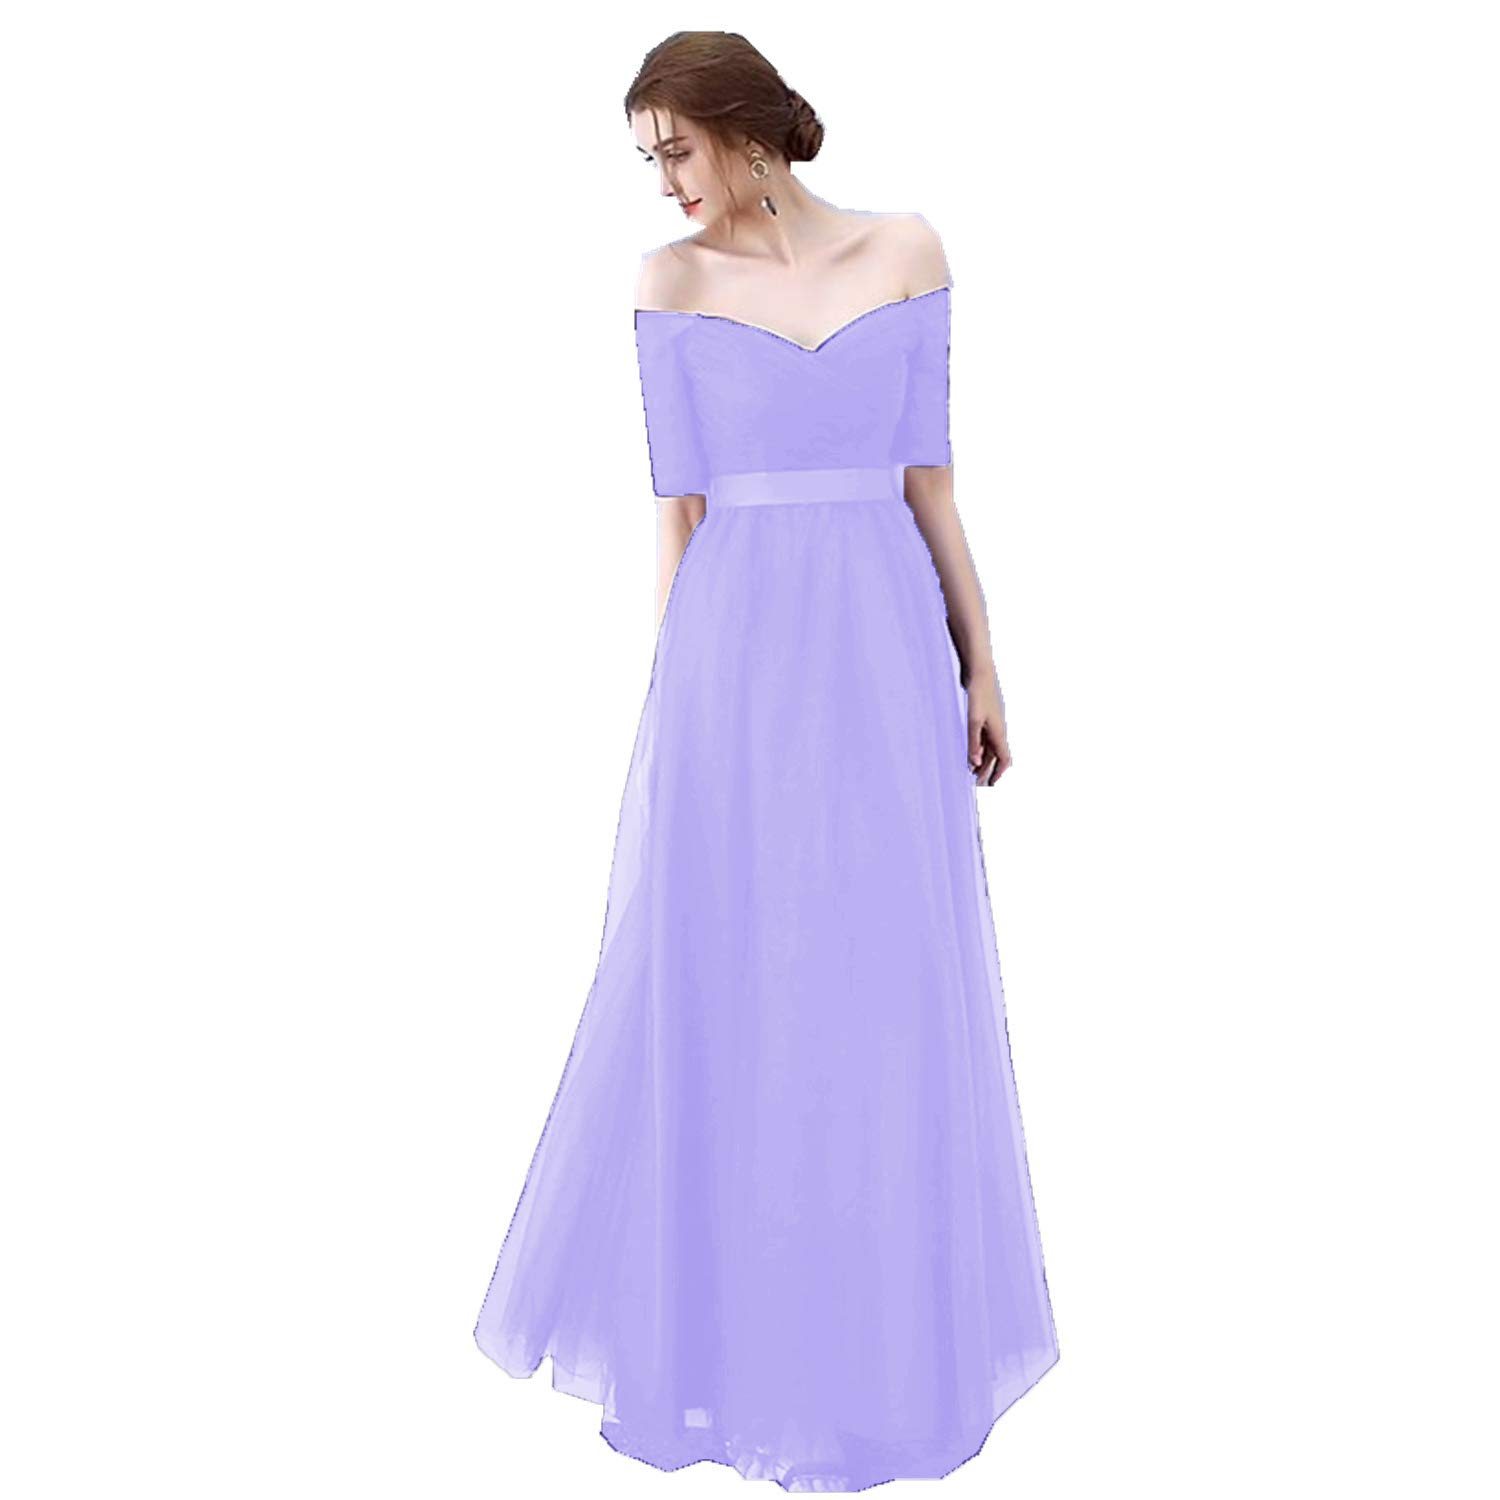 Lavender Ruiyuhong Women's VNeck Off The Shoulder Bridesmaid Dresses Long Tulle Wedding Party Gown